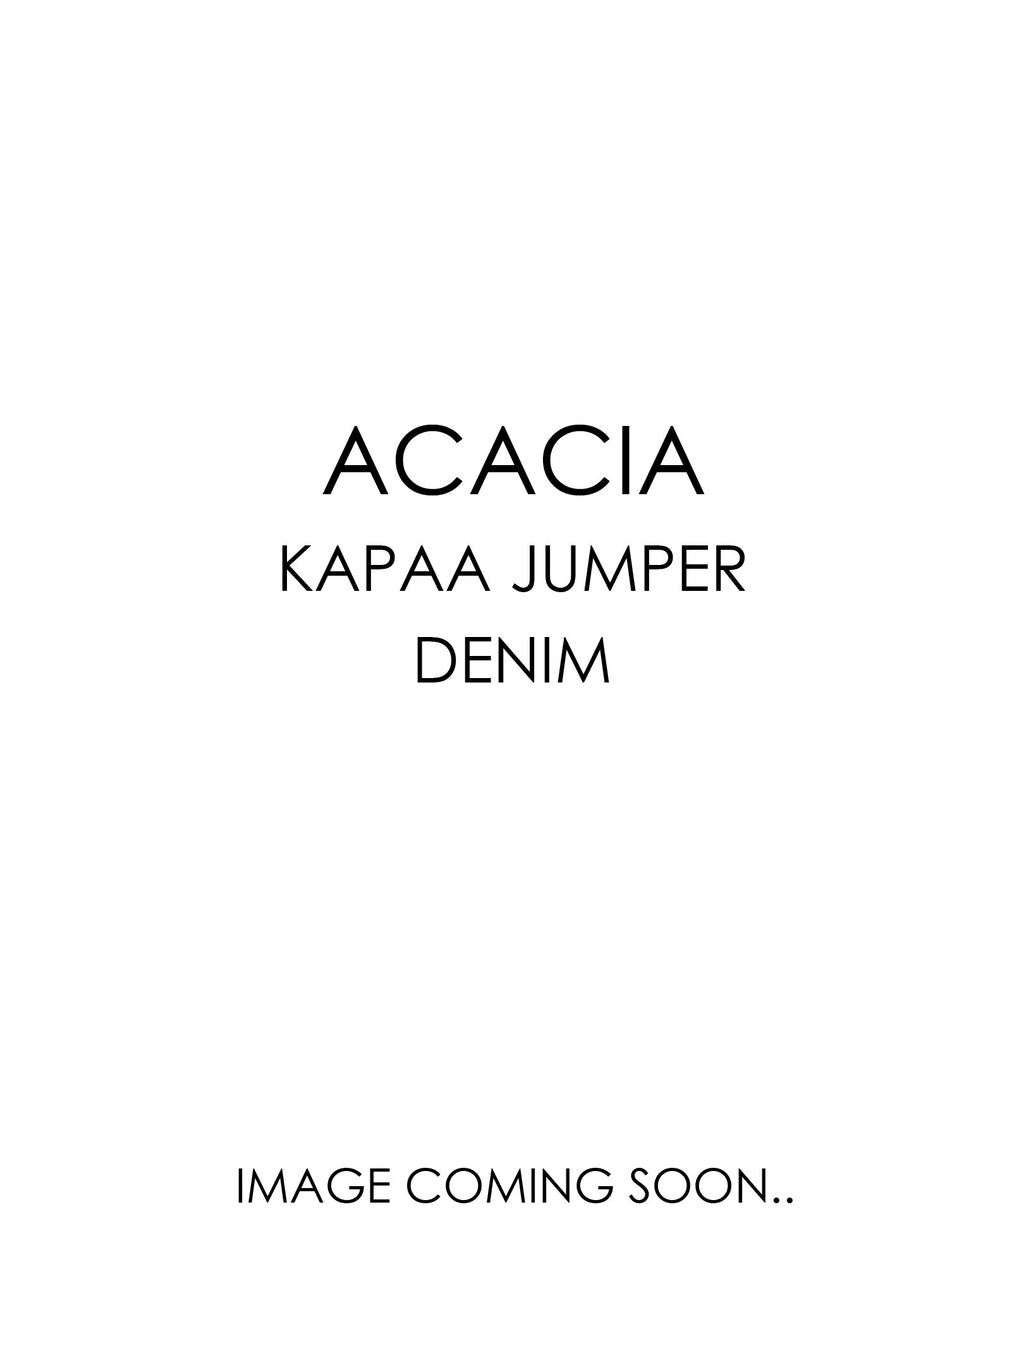 ACACIA Kapaa Jumper | Denim